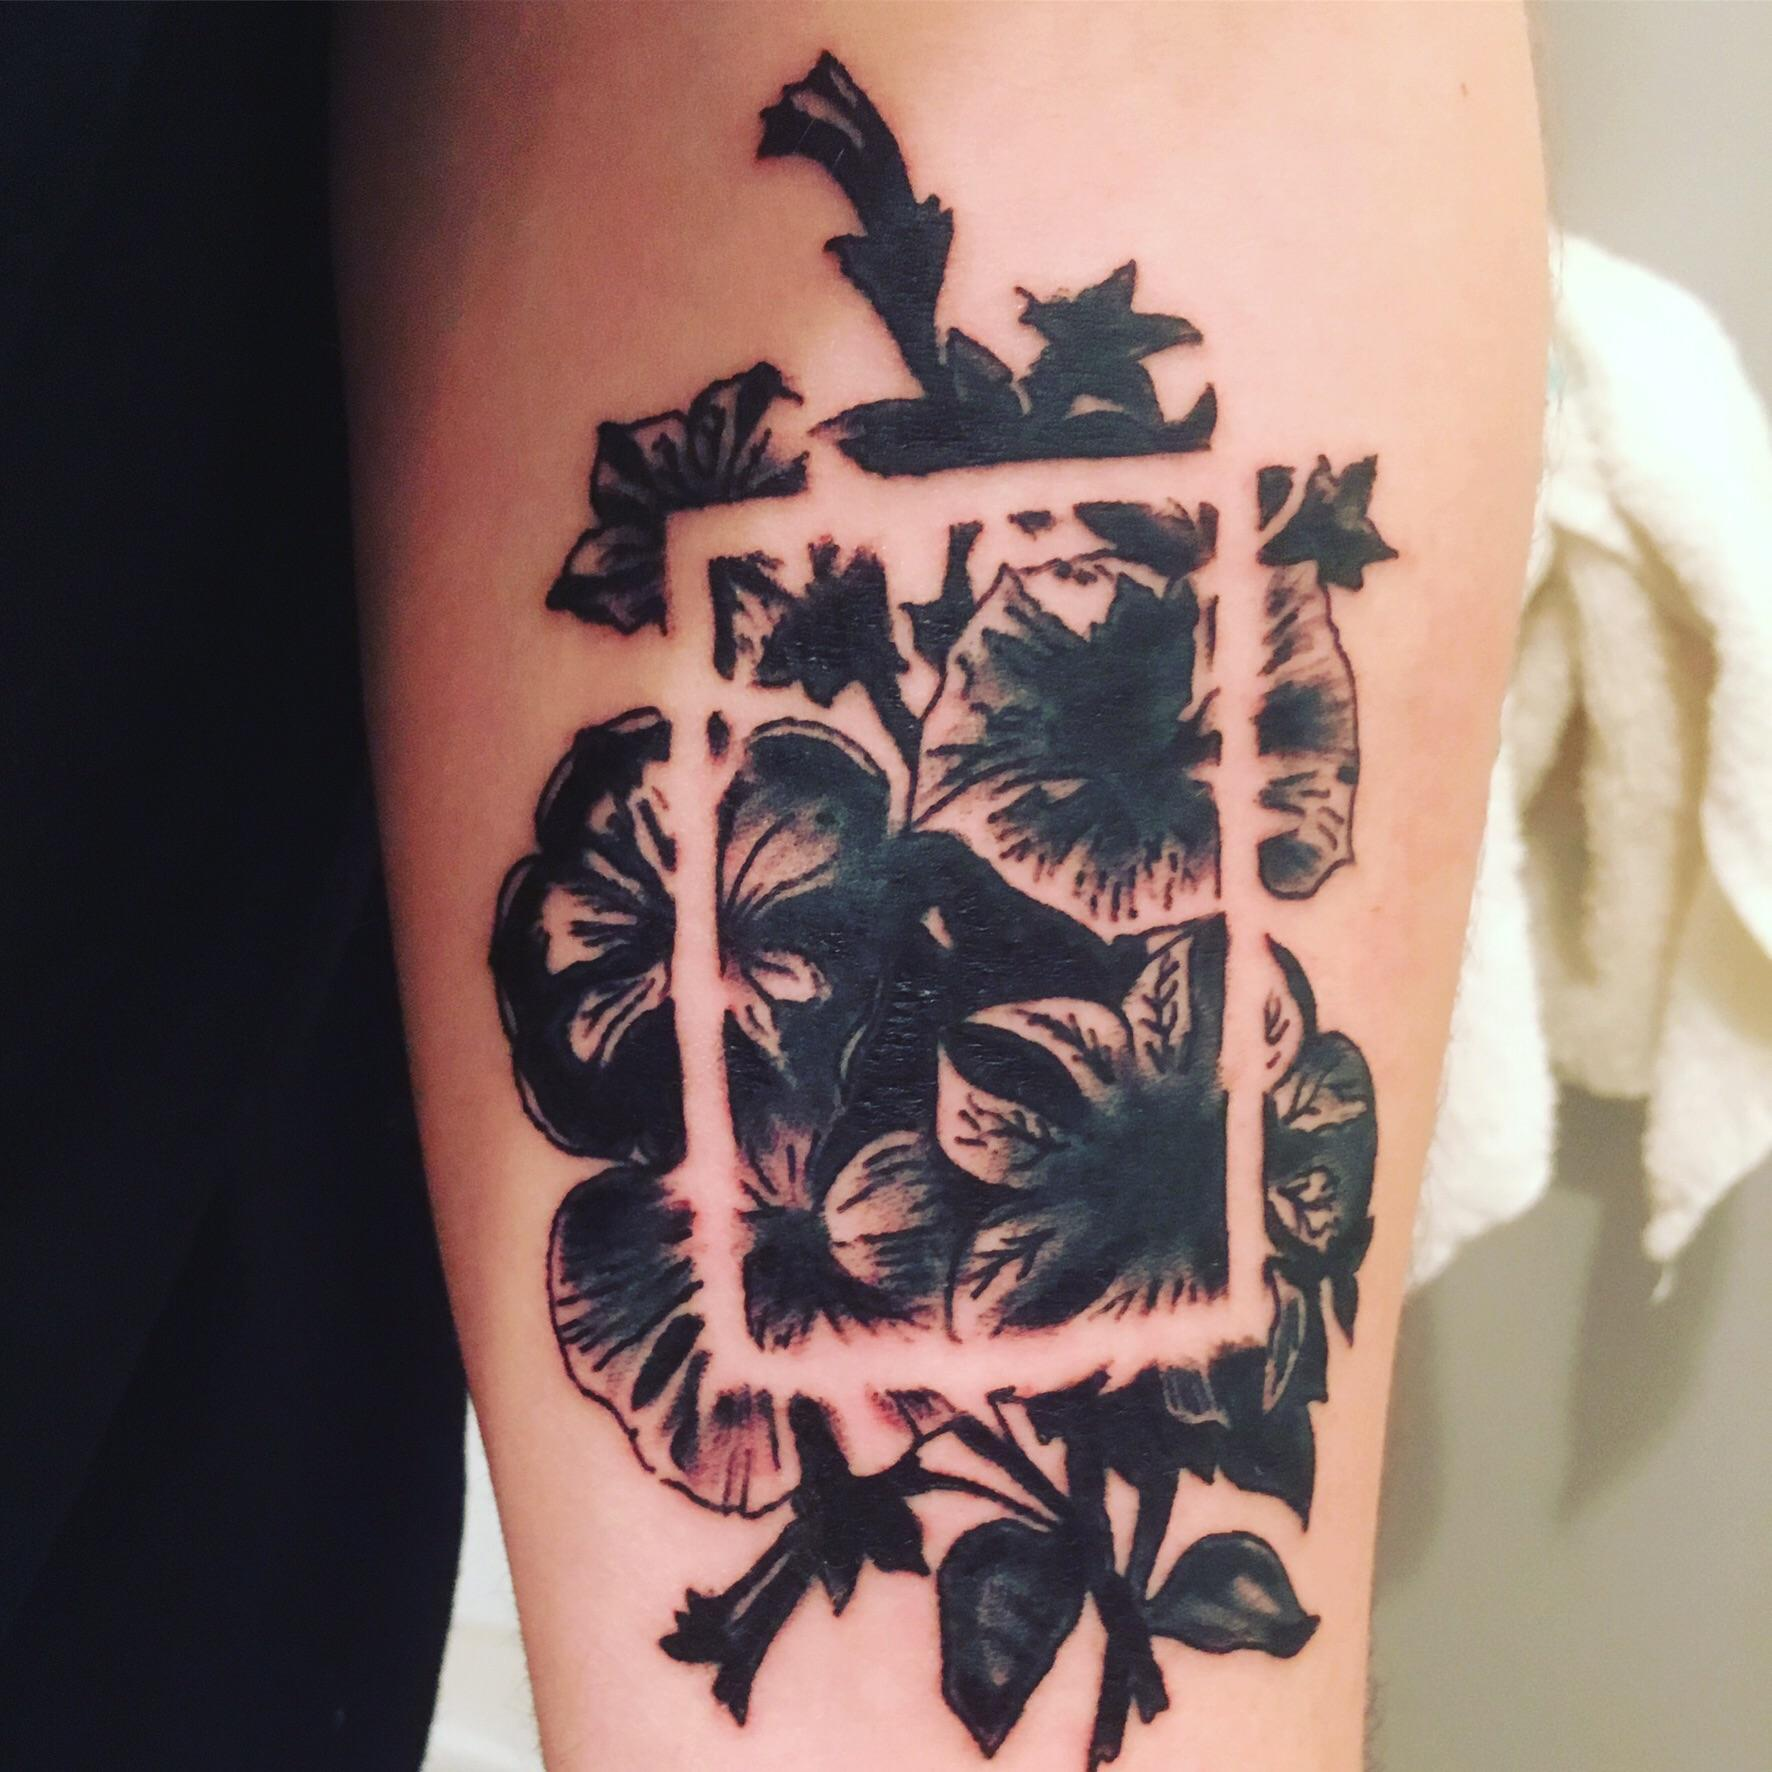 My The 1975 Inspired Tattoo Done By Tony Jones At Rising Ideas And Designs